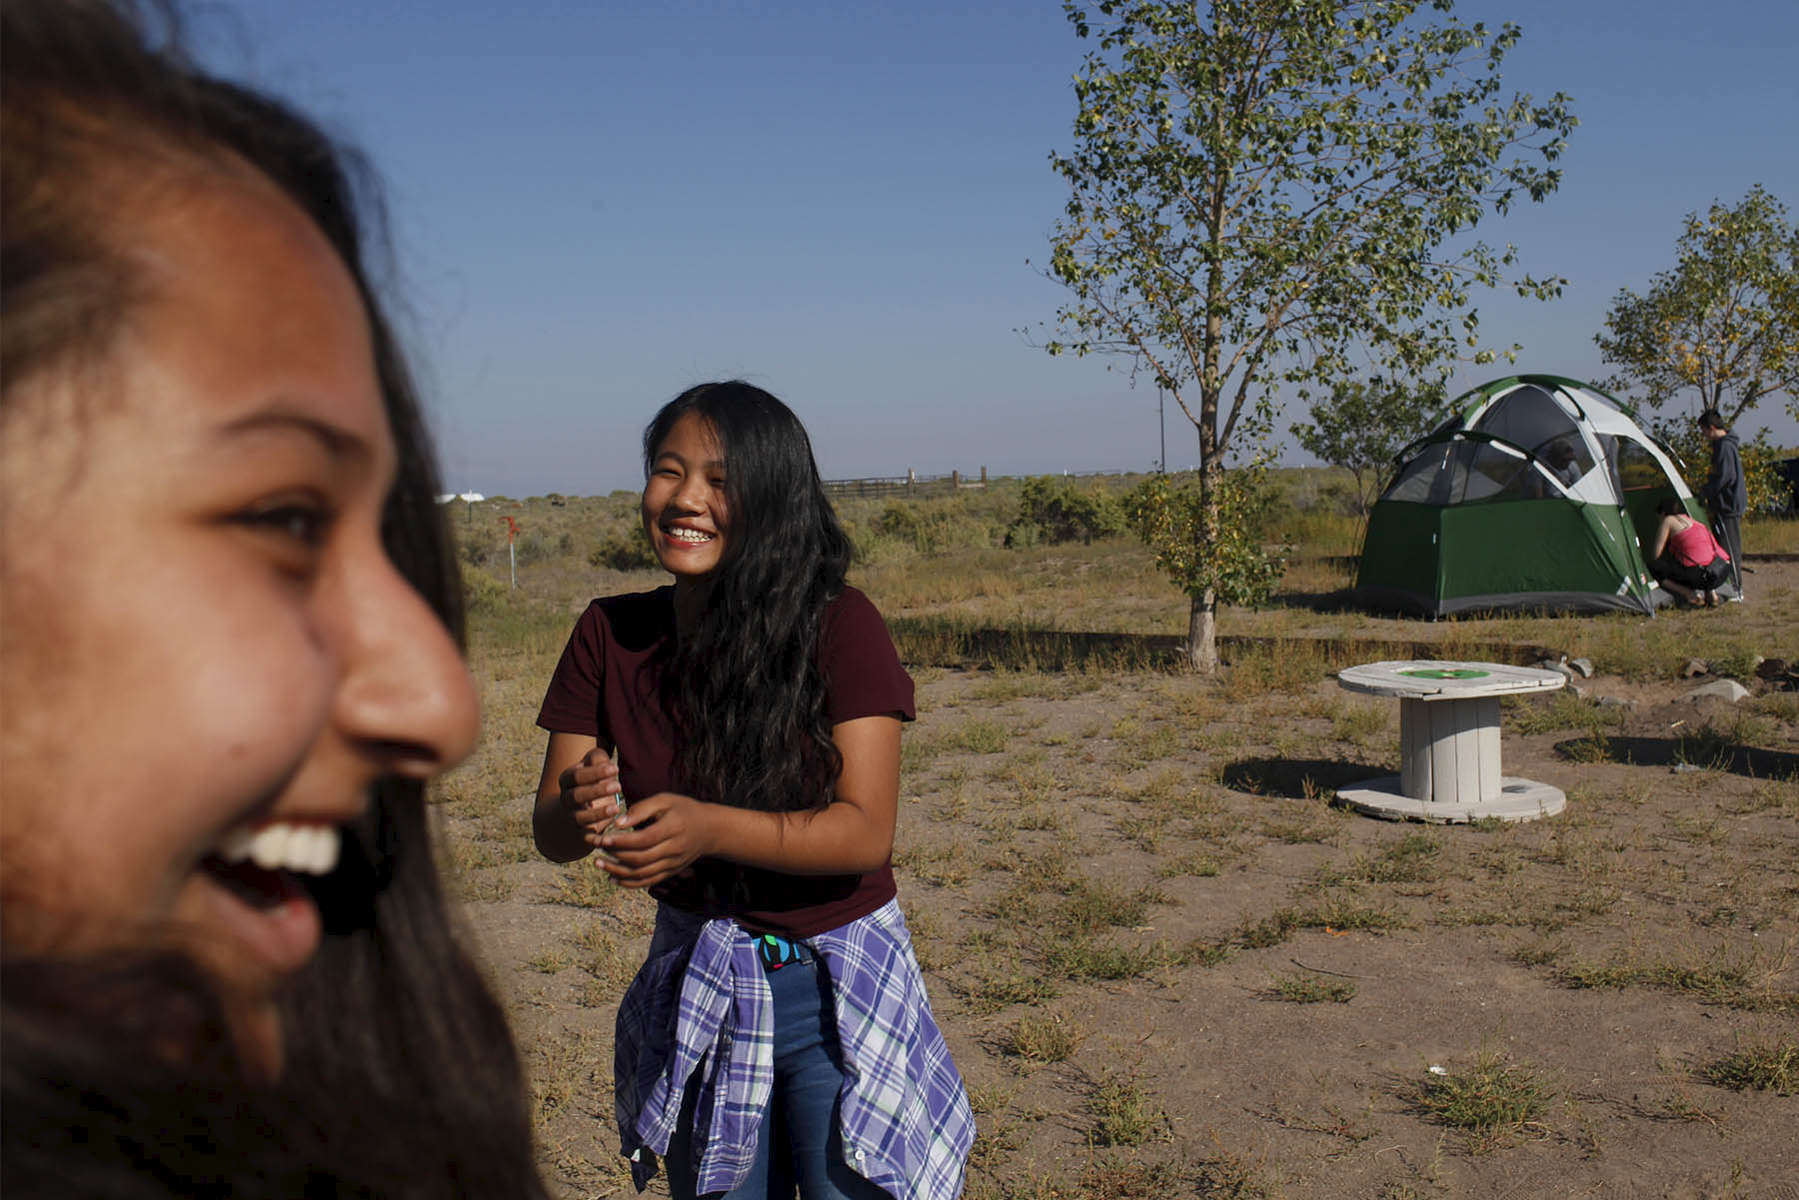 Nirshika Neopany, 14, left and Dechen Drukpa, 14, right, laugh together before making breakfast at their campsite in Hooper, Colo. on Sept. 3, 2017.